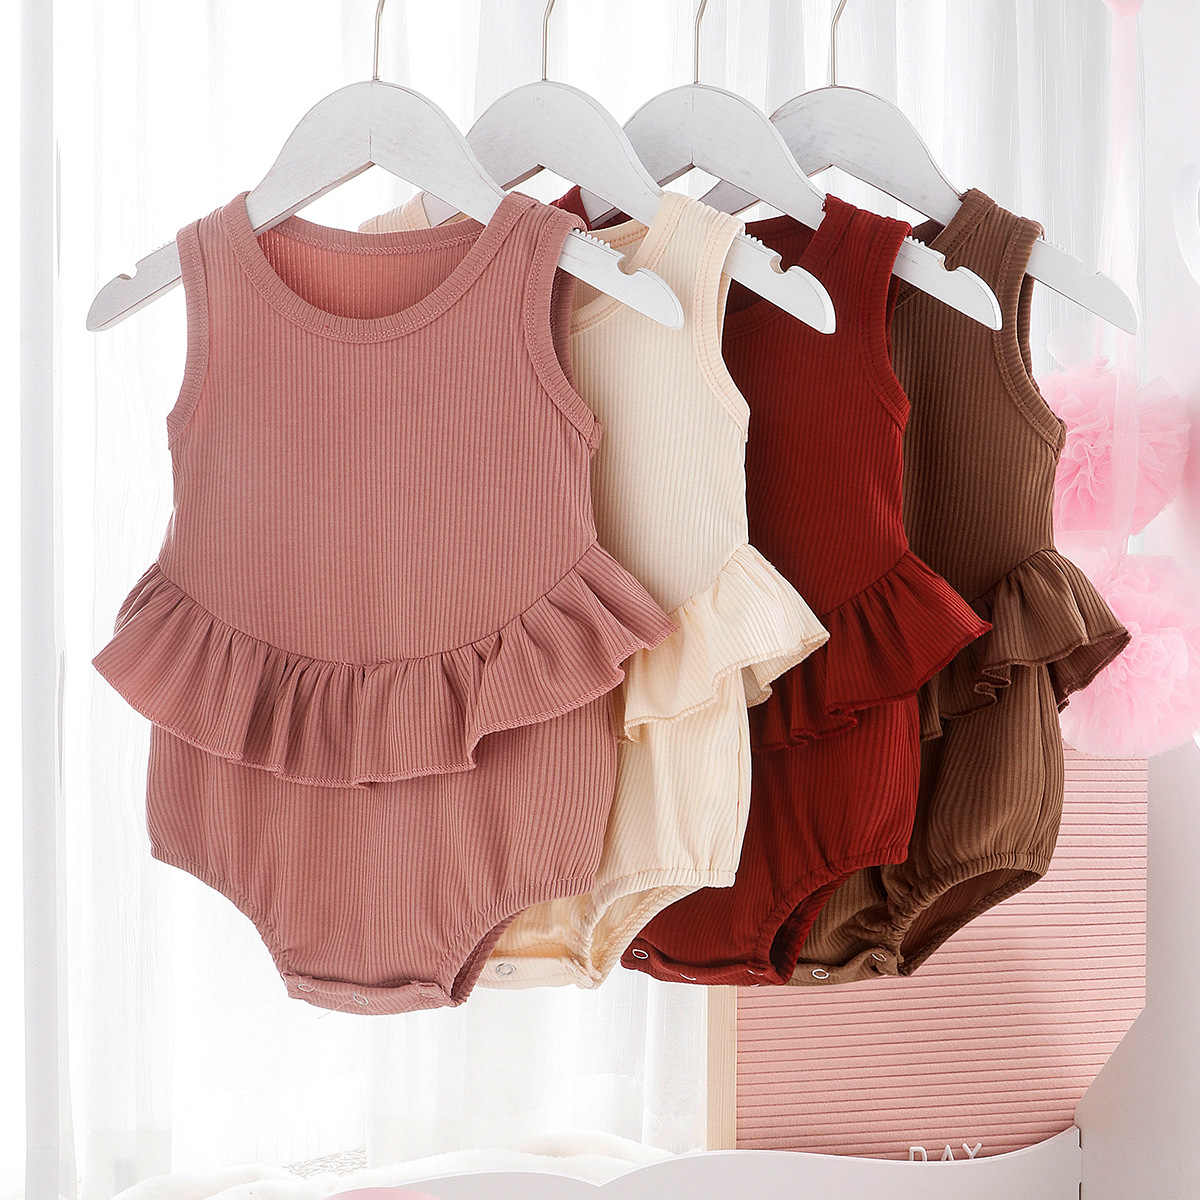 infant baby girls sleeveless ruched solid outfits romper newborn casual jumpsuits toddler sunsuits girl clothing 0-24M